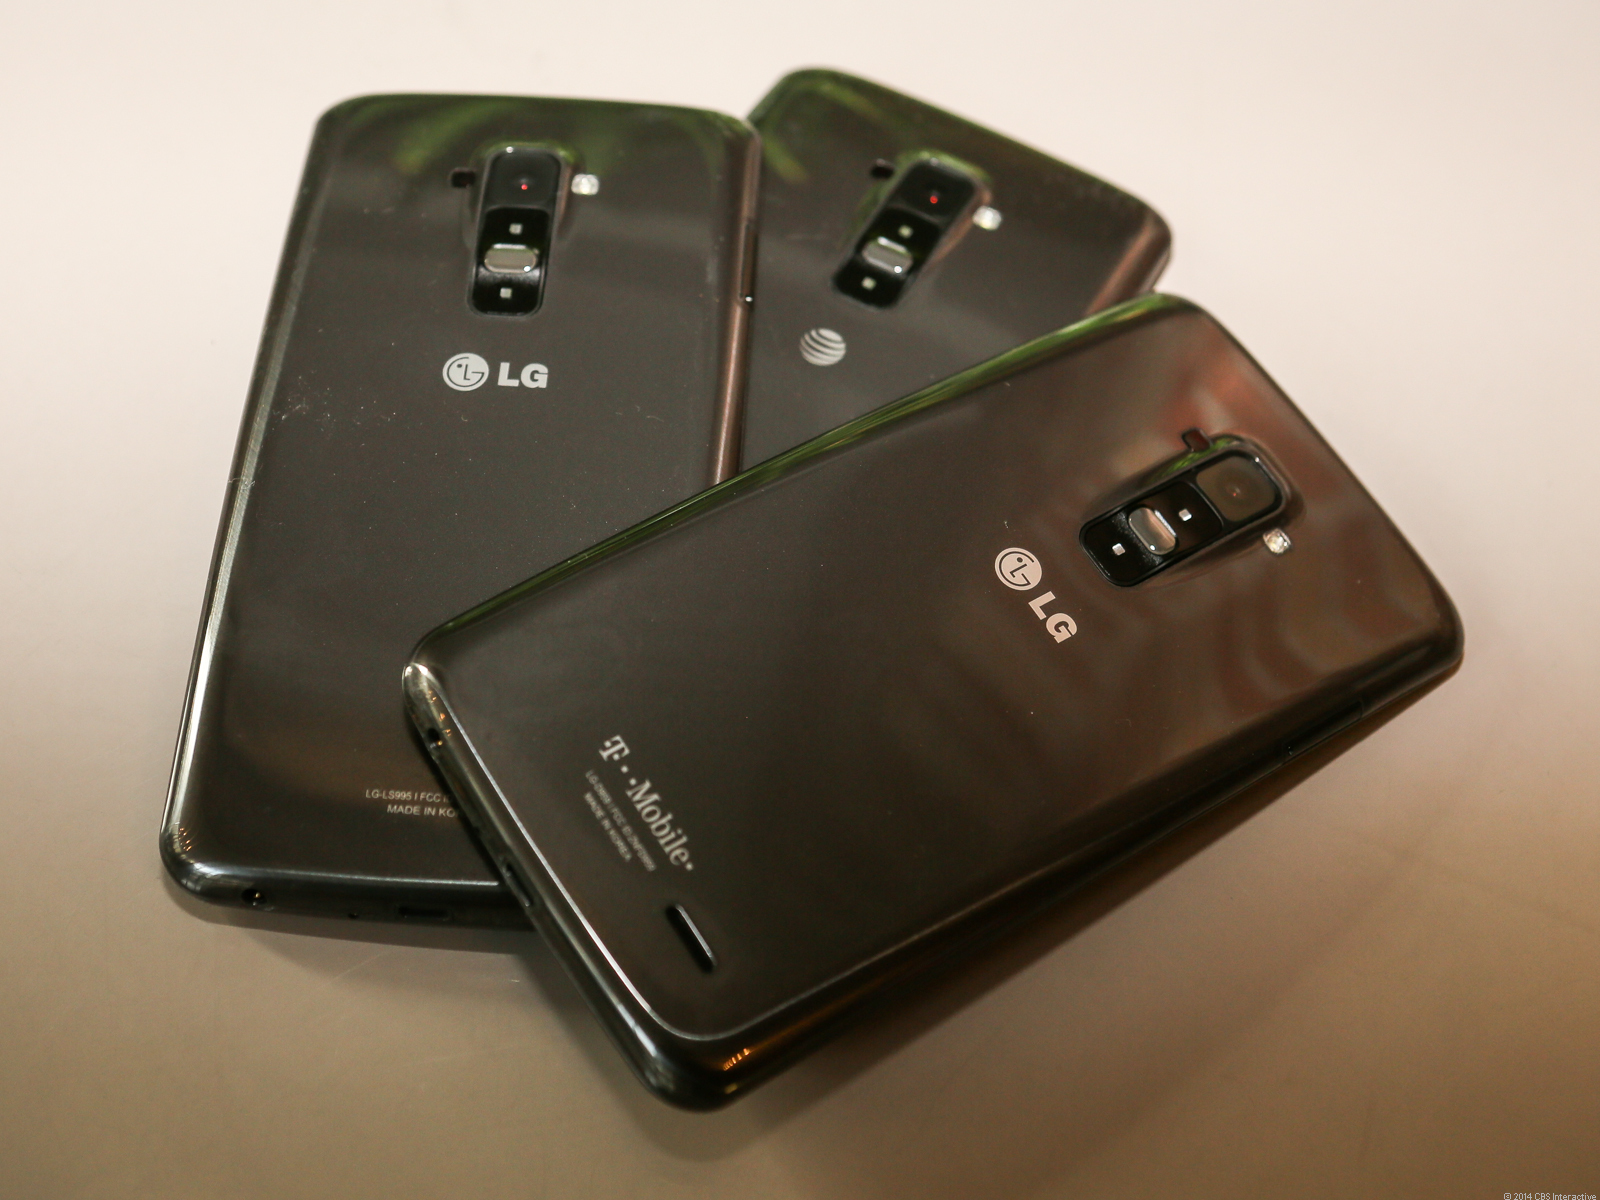 LG G Flex (all carriers rear)